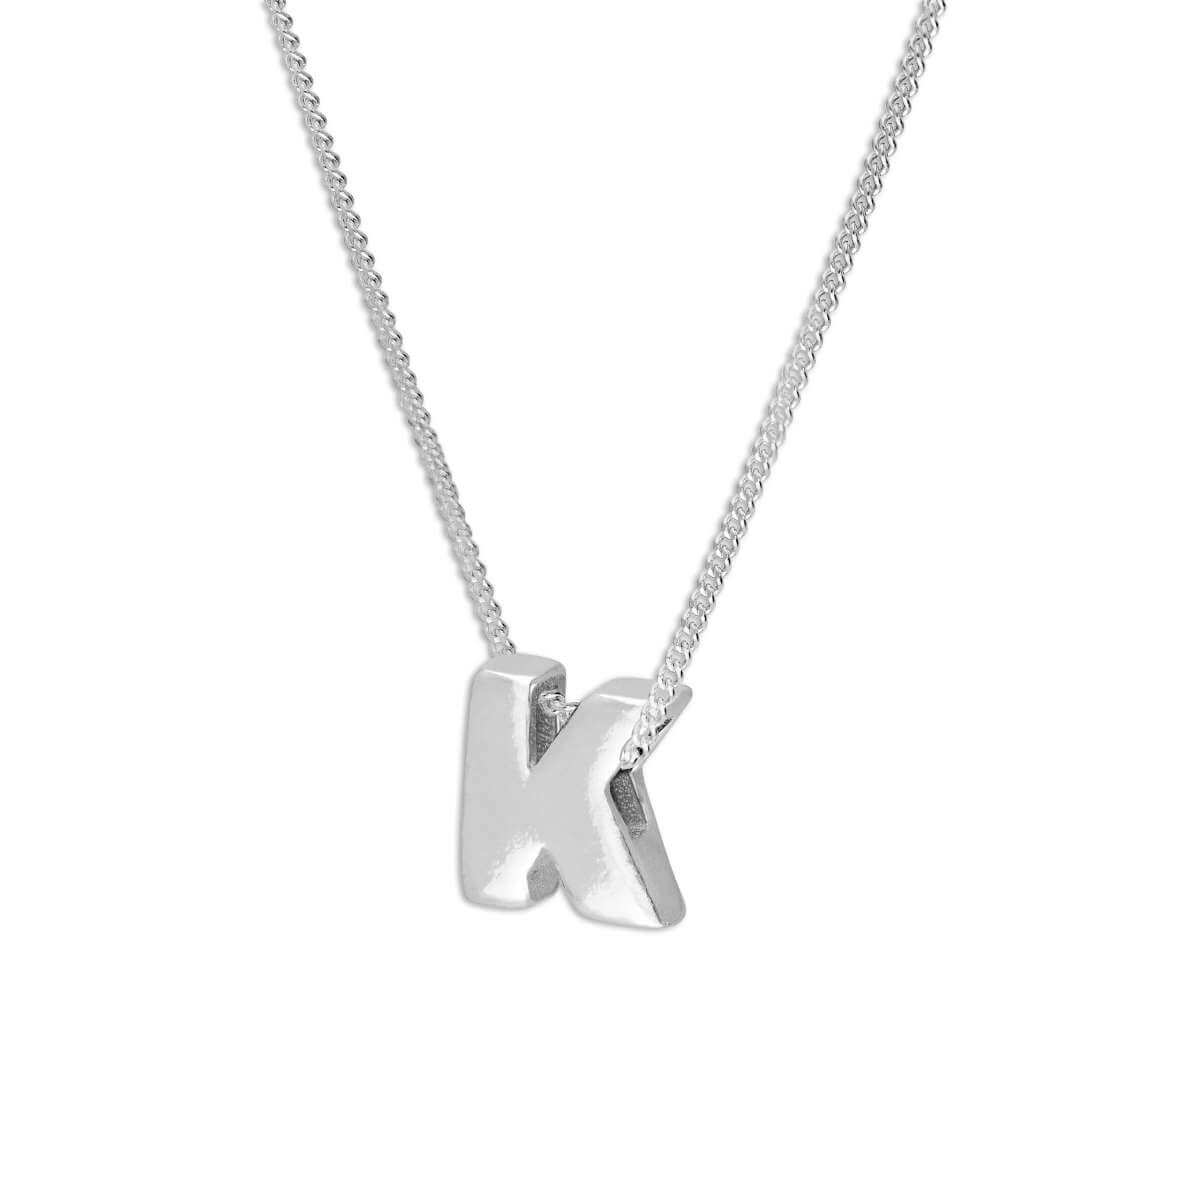 Sterling Silver Alphabet Letter Threader Bead 16+2 Inch Necklace K